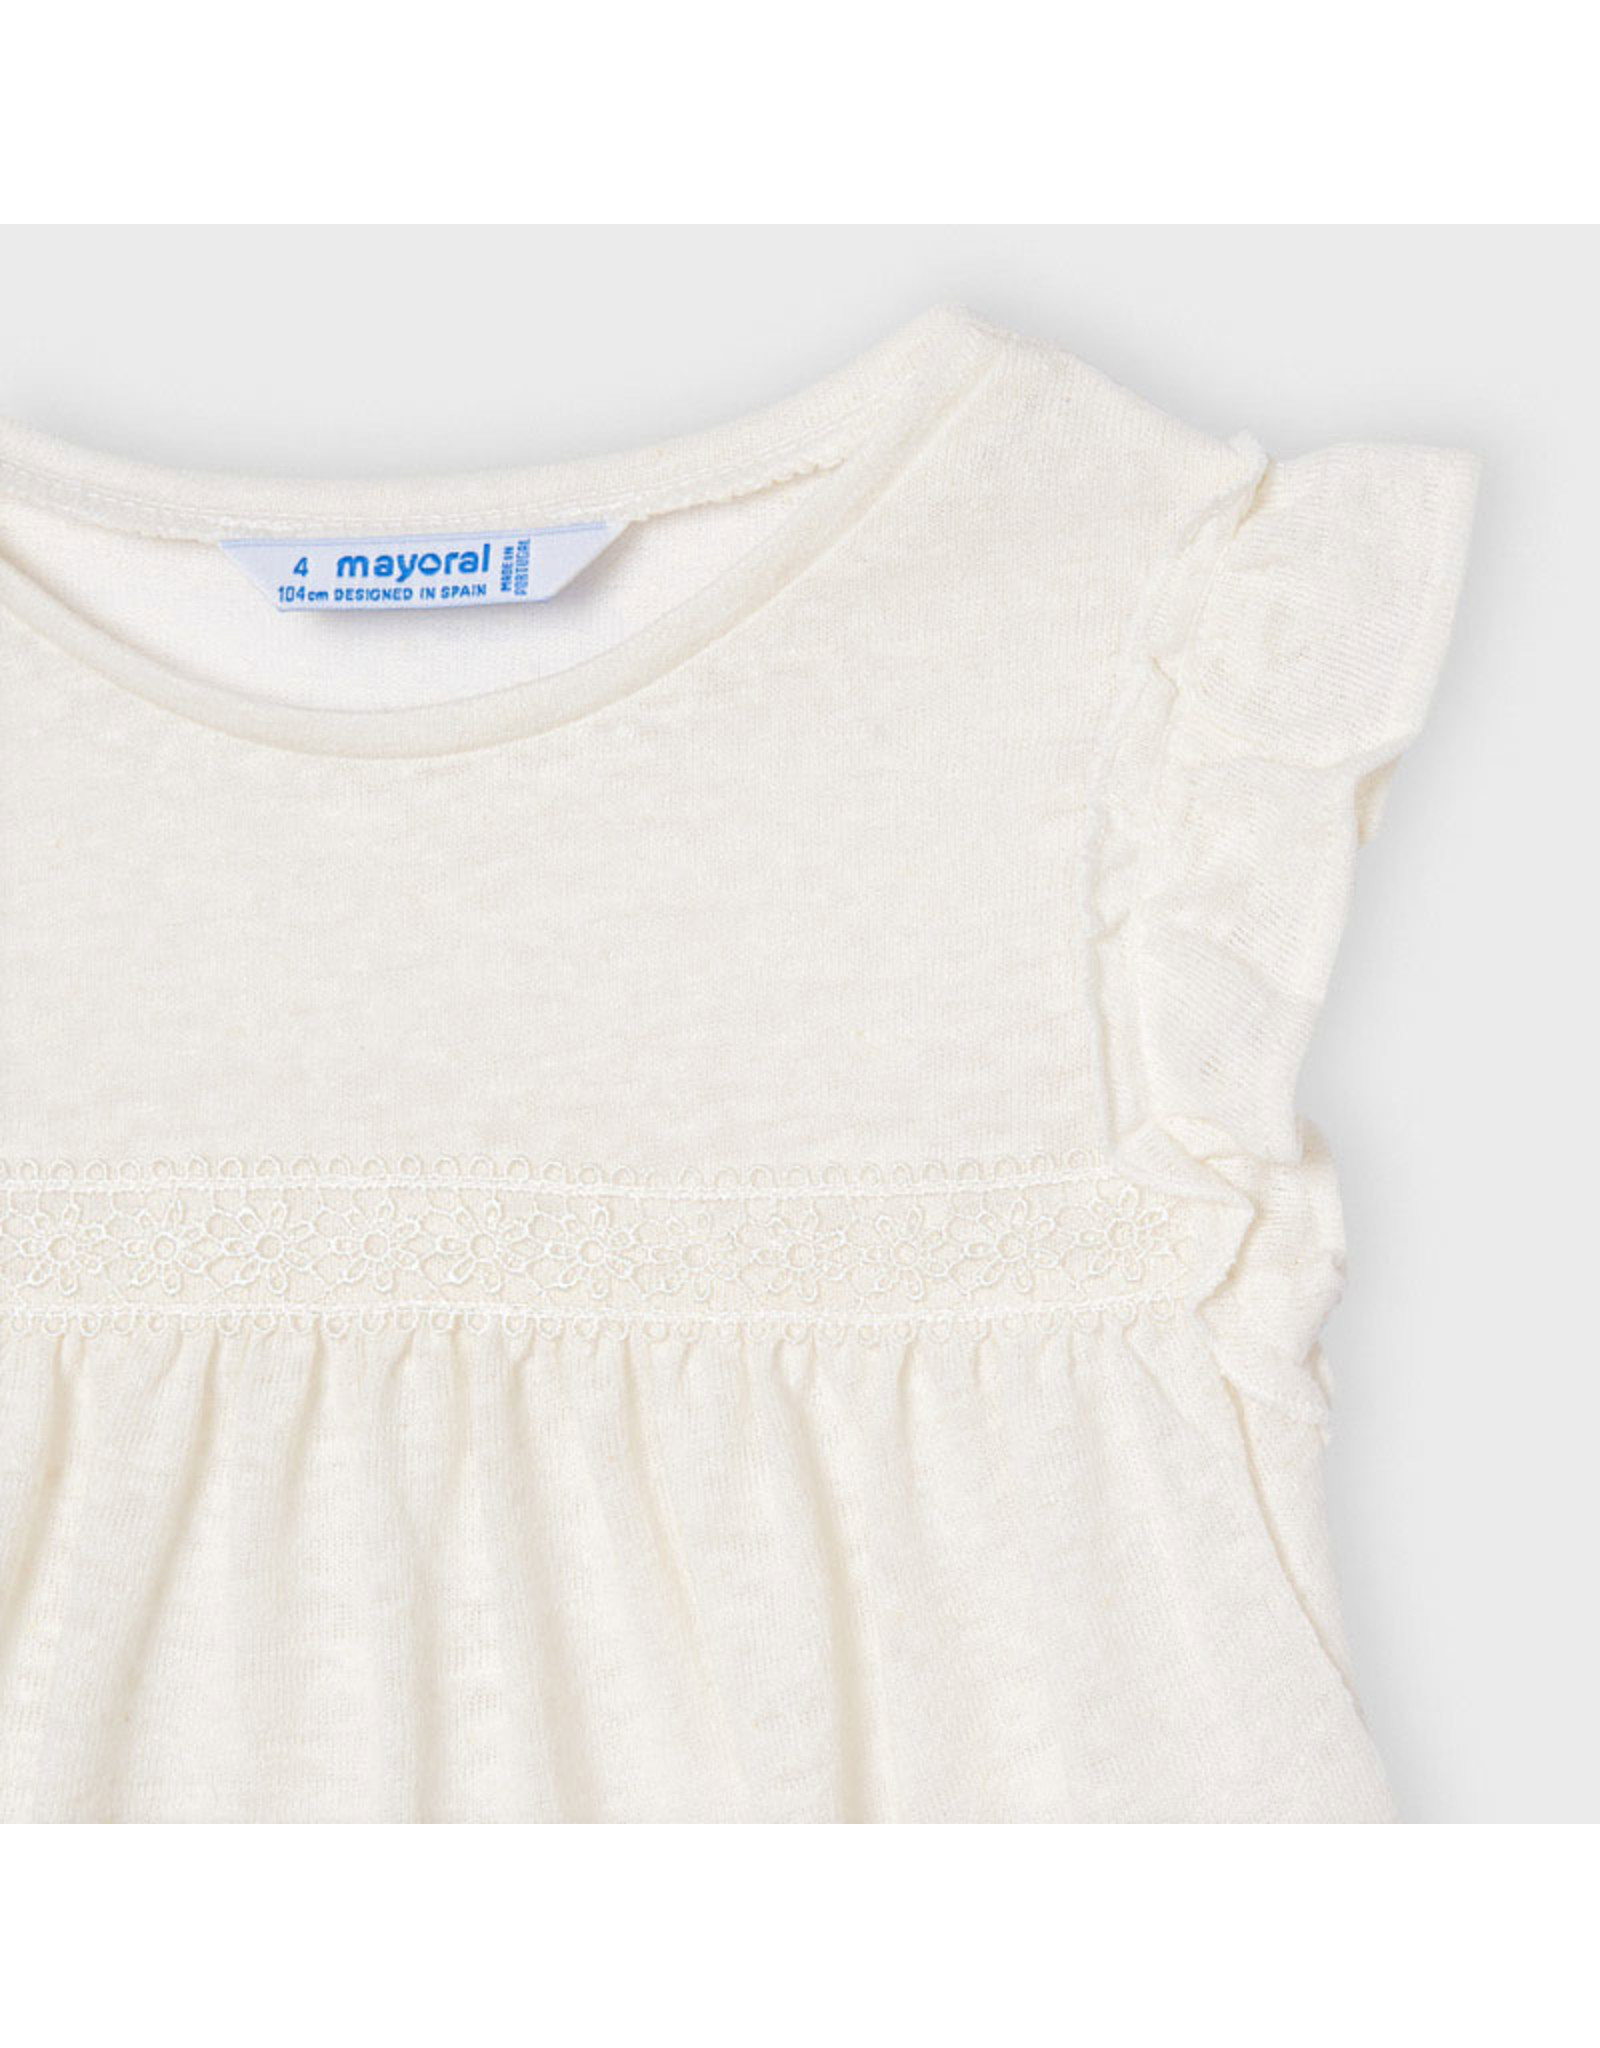 Mayoral linen s/s t-shirt  Natural